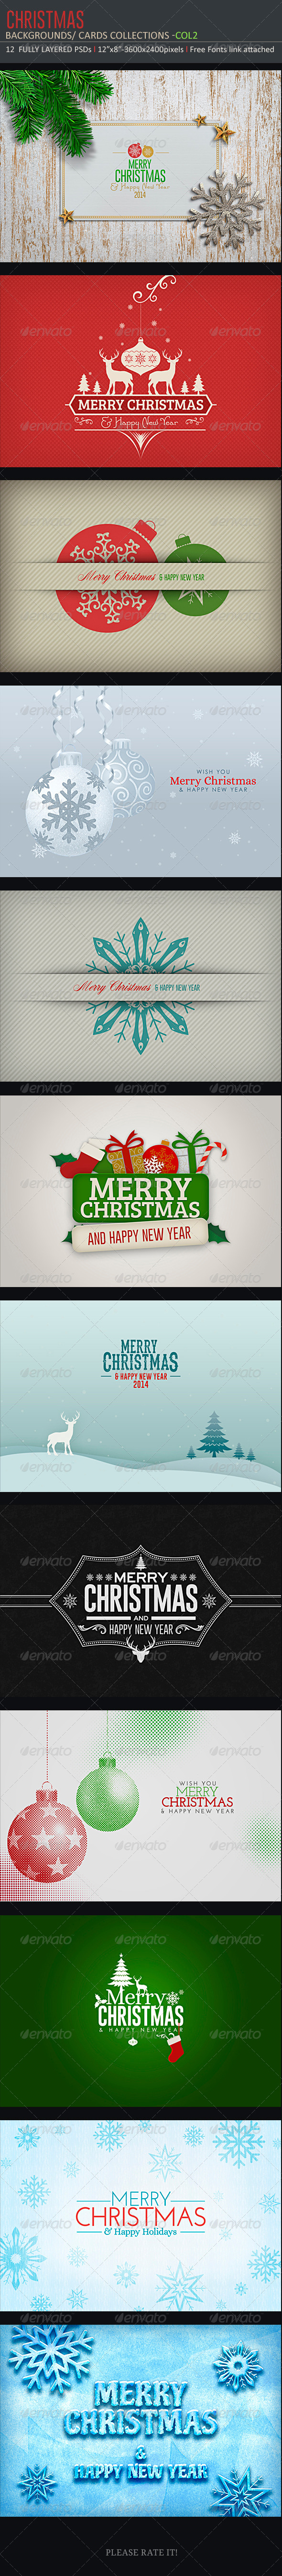 Christmas Backgrounds-Cards -Col2 - Backgrounds Graphics